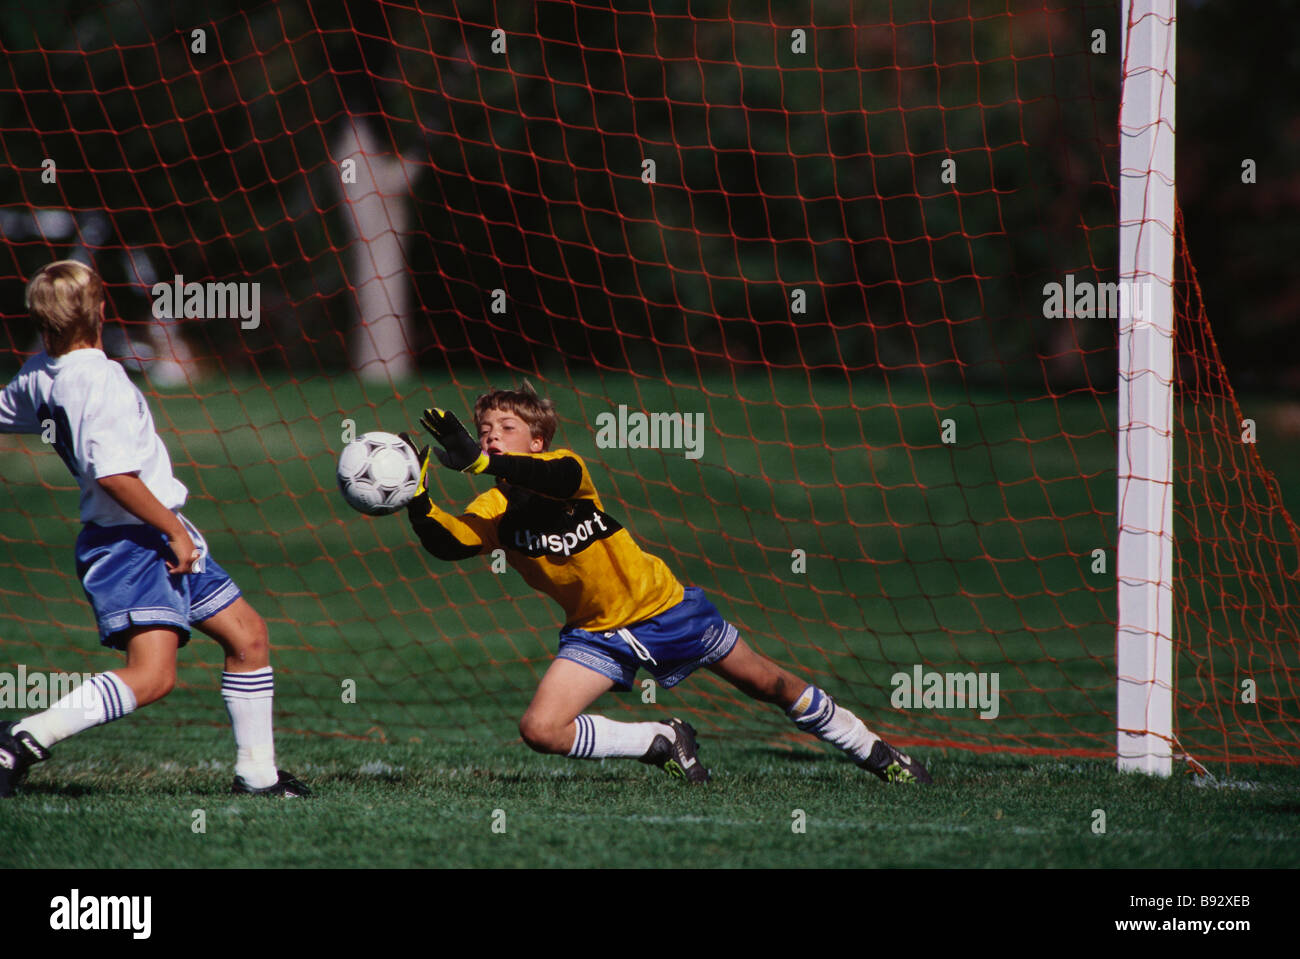 11 year old boys soccer goalie in action Stock Photo